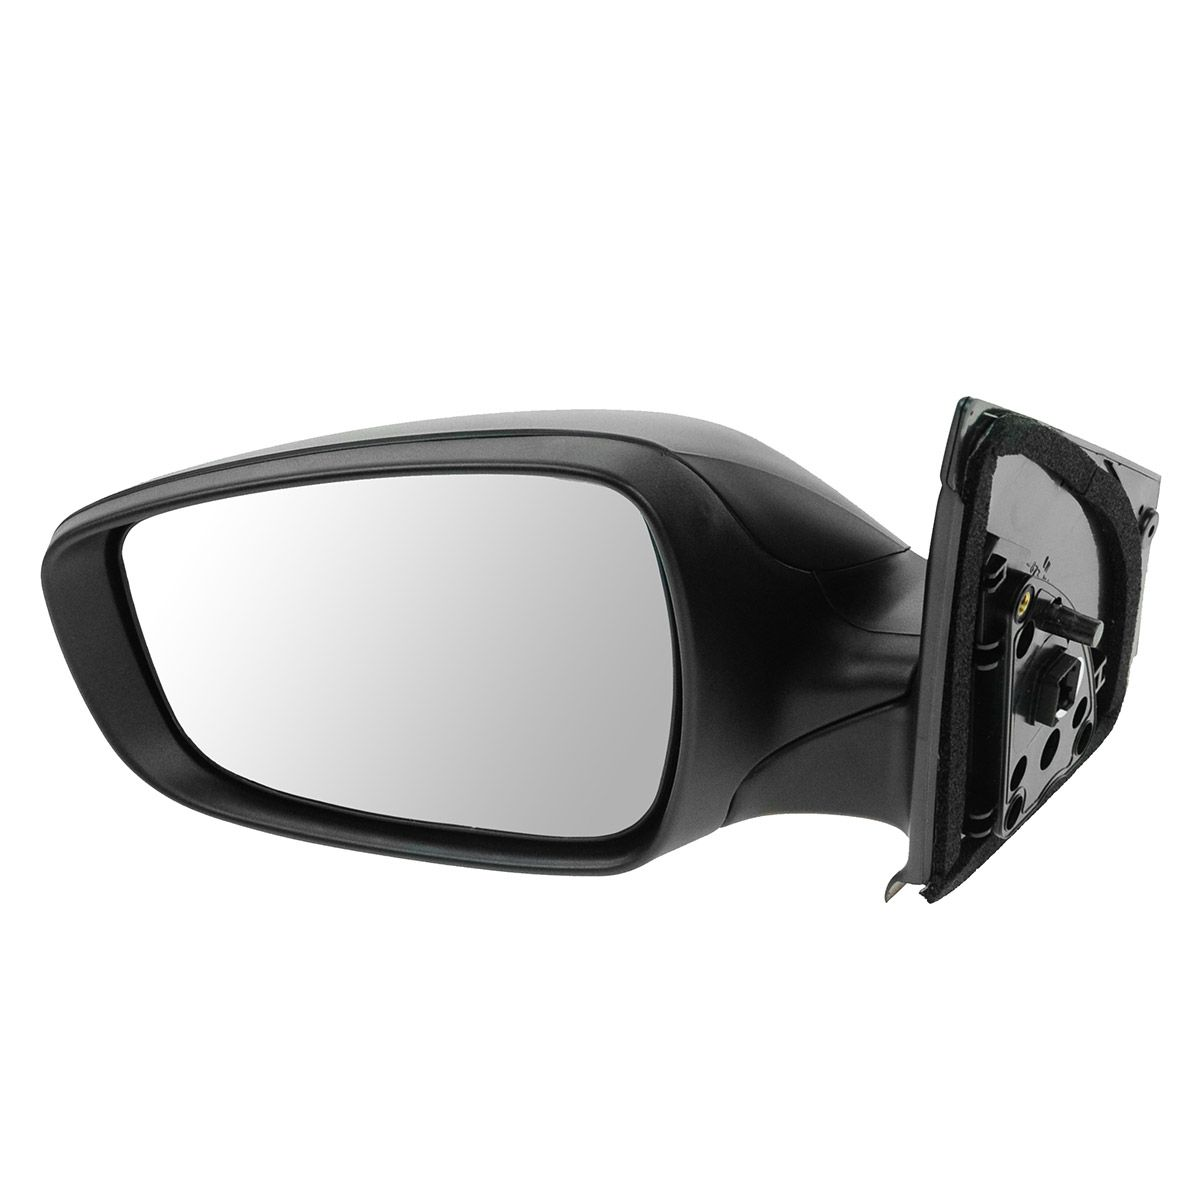 Mirror Power Black Textured Driver Side Left LH for 12-14 Toyota Tacoma NEW